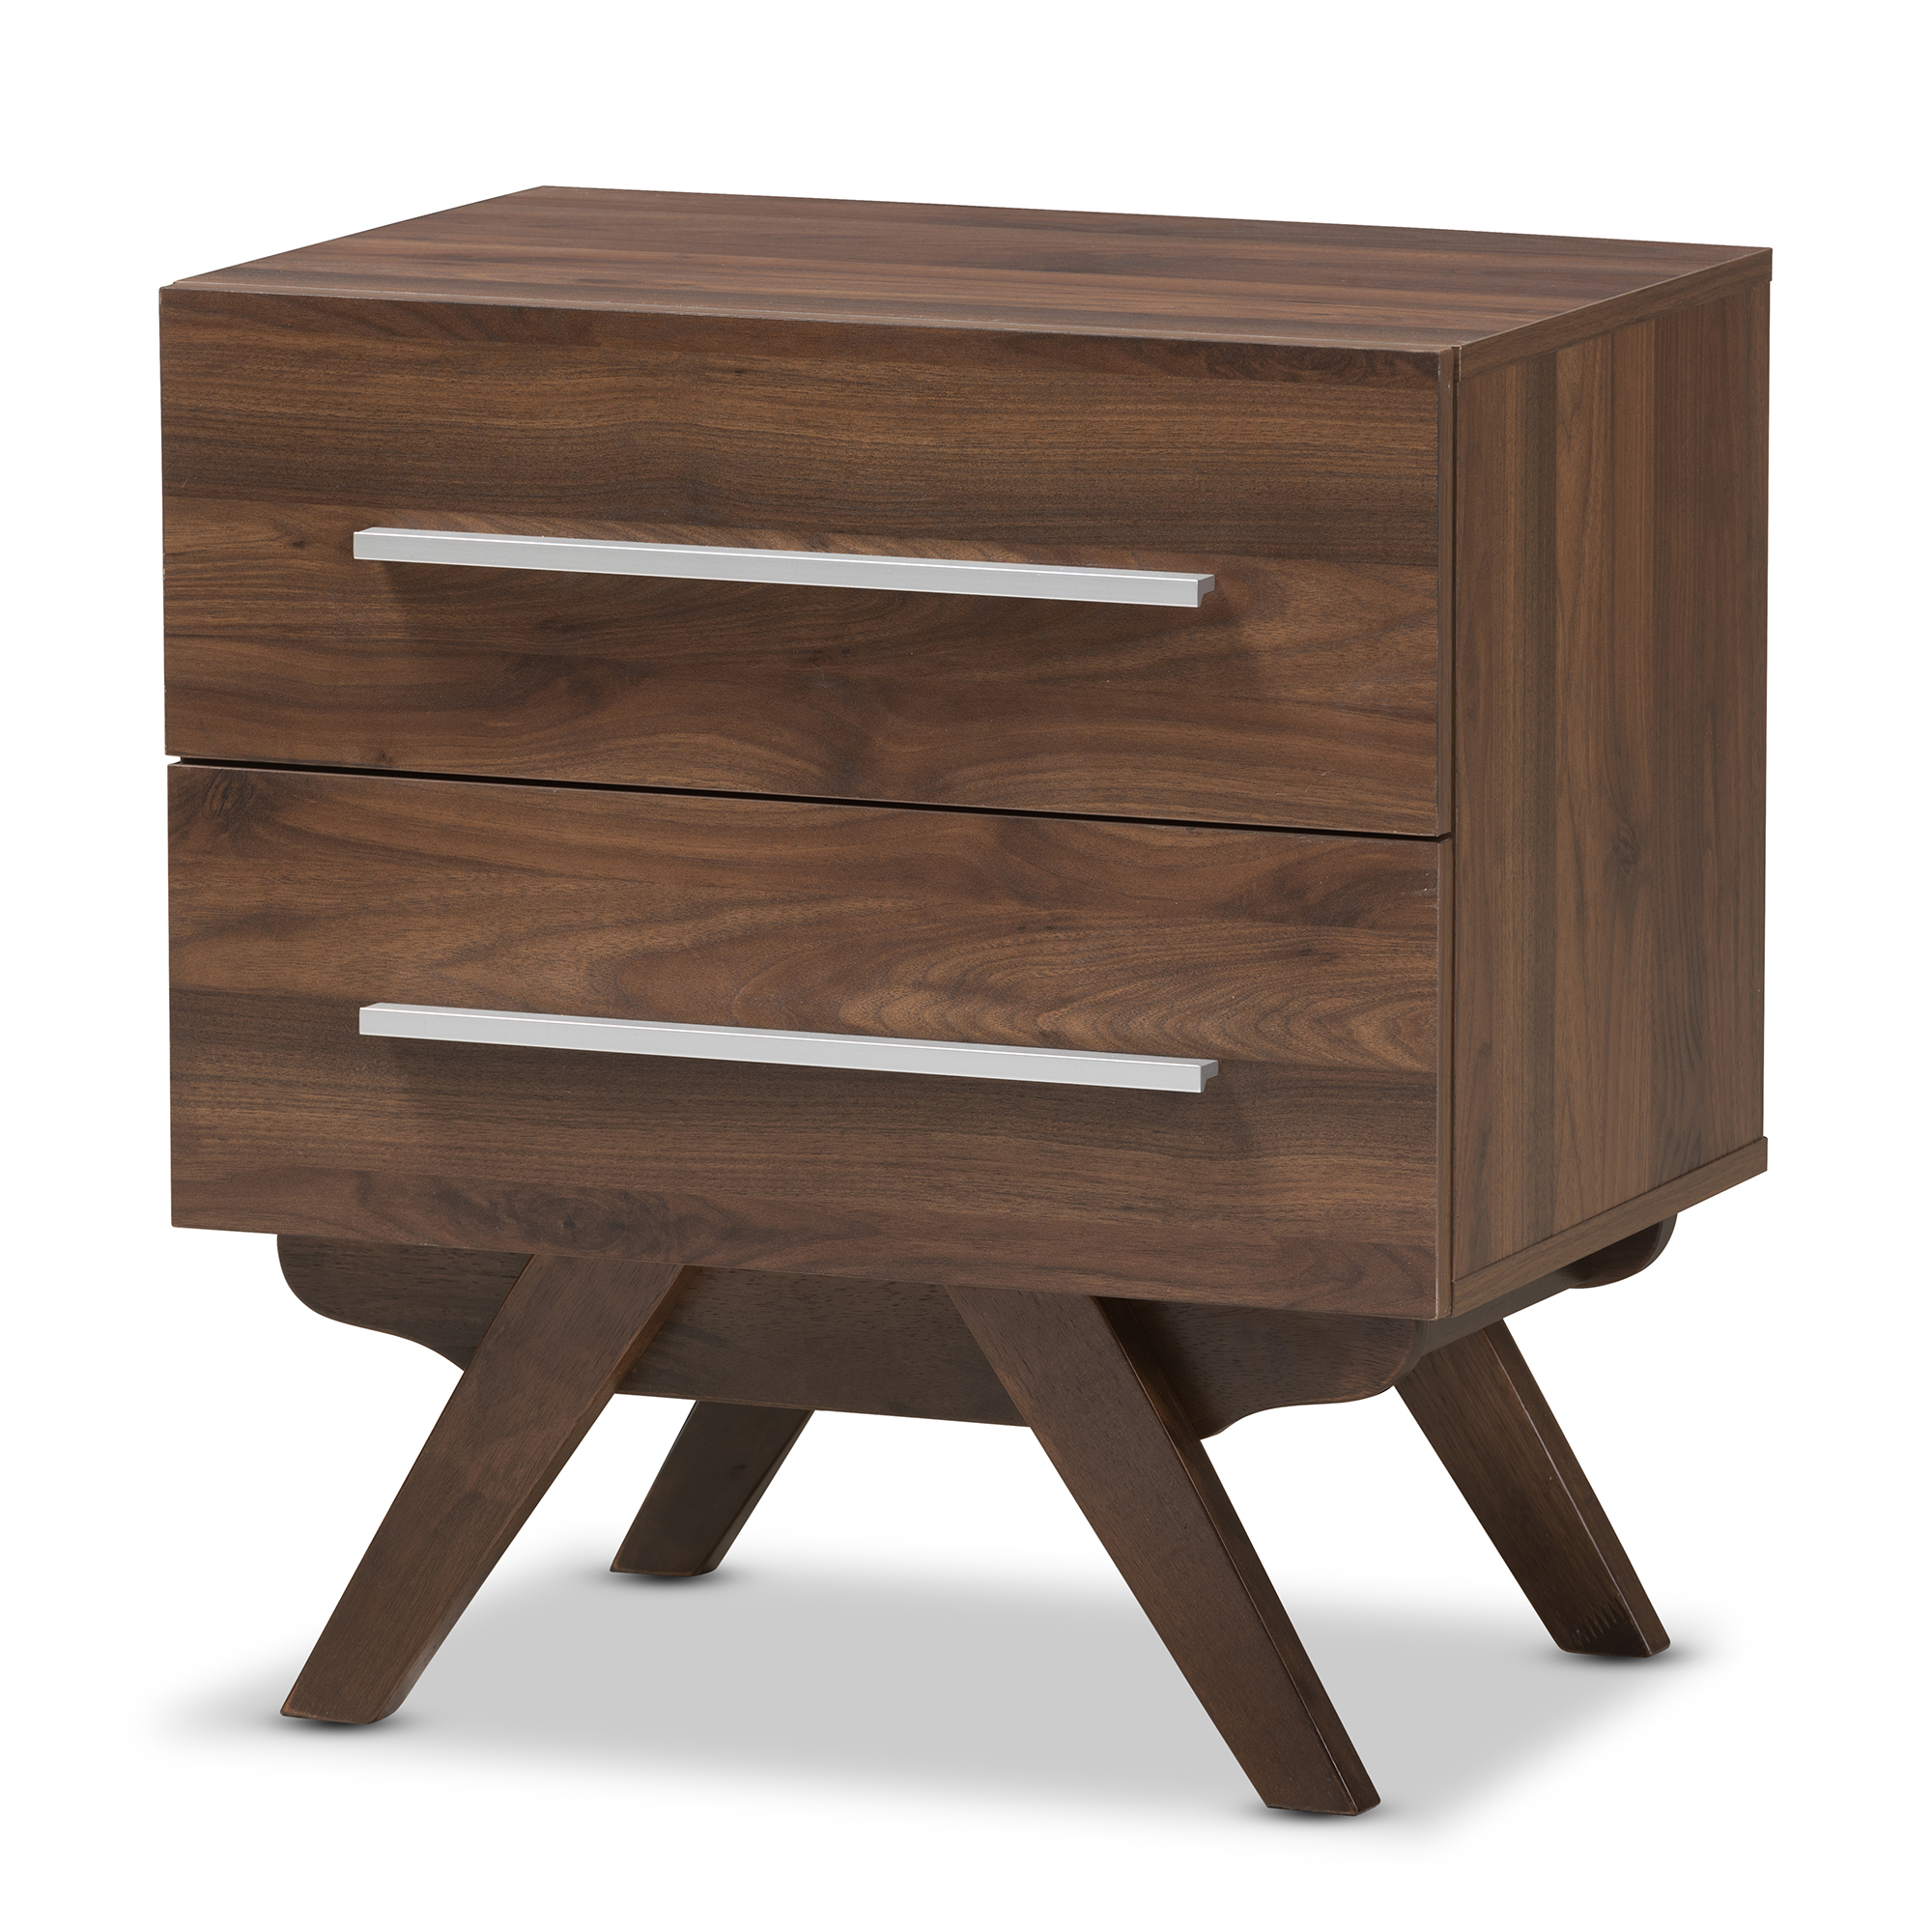 Image of Baxton Studio Auburn Mid-Century Modern Finished Wood 2-Drawer Nightstand, Dark Brown